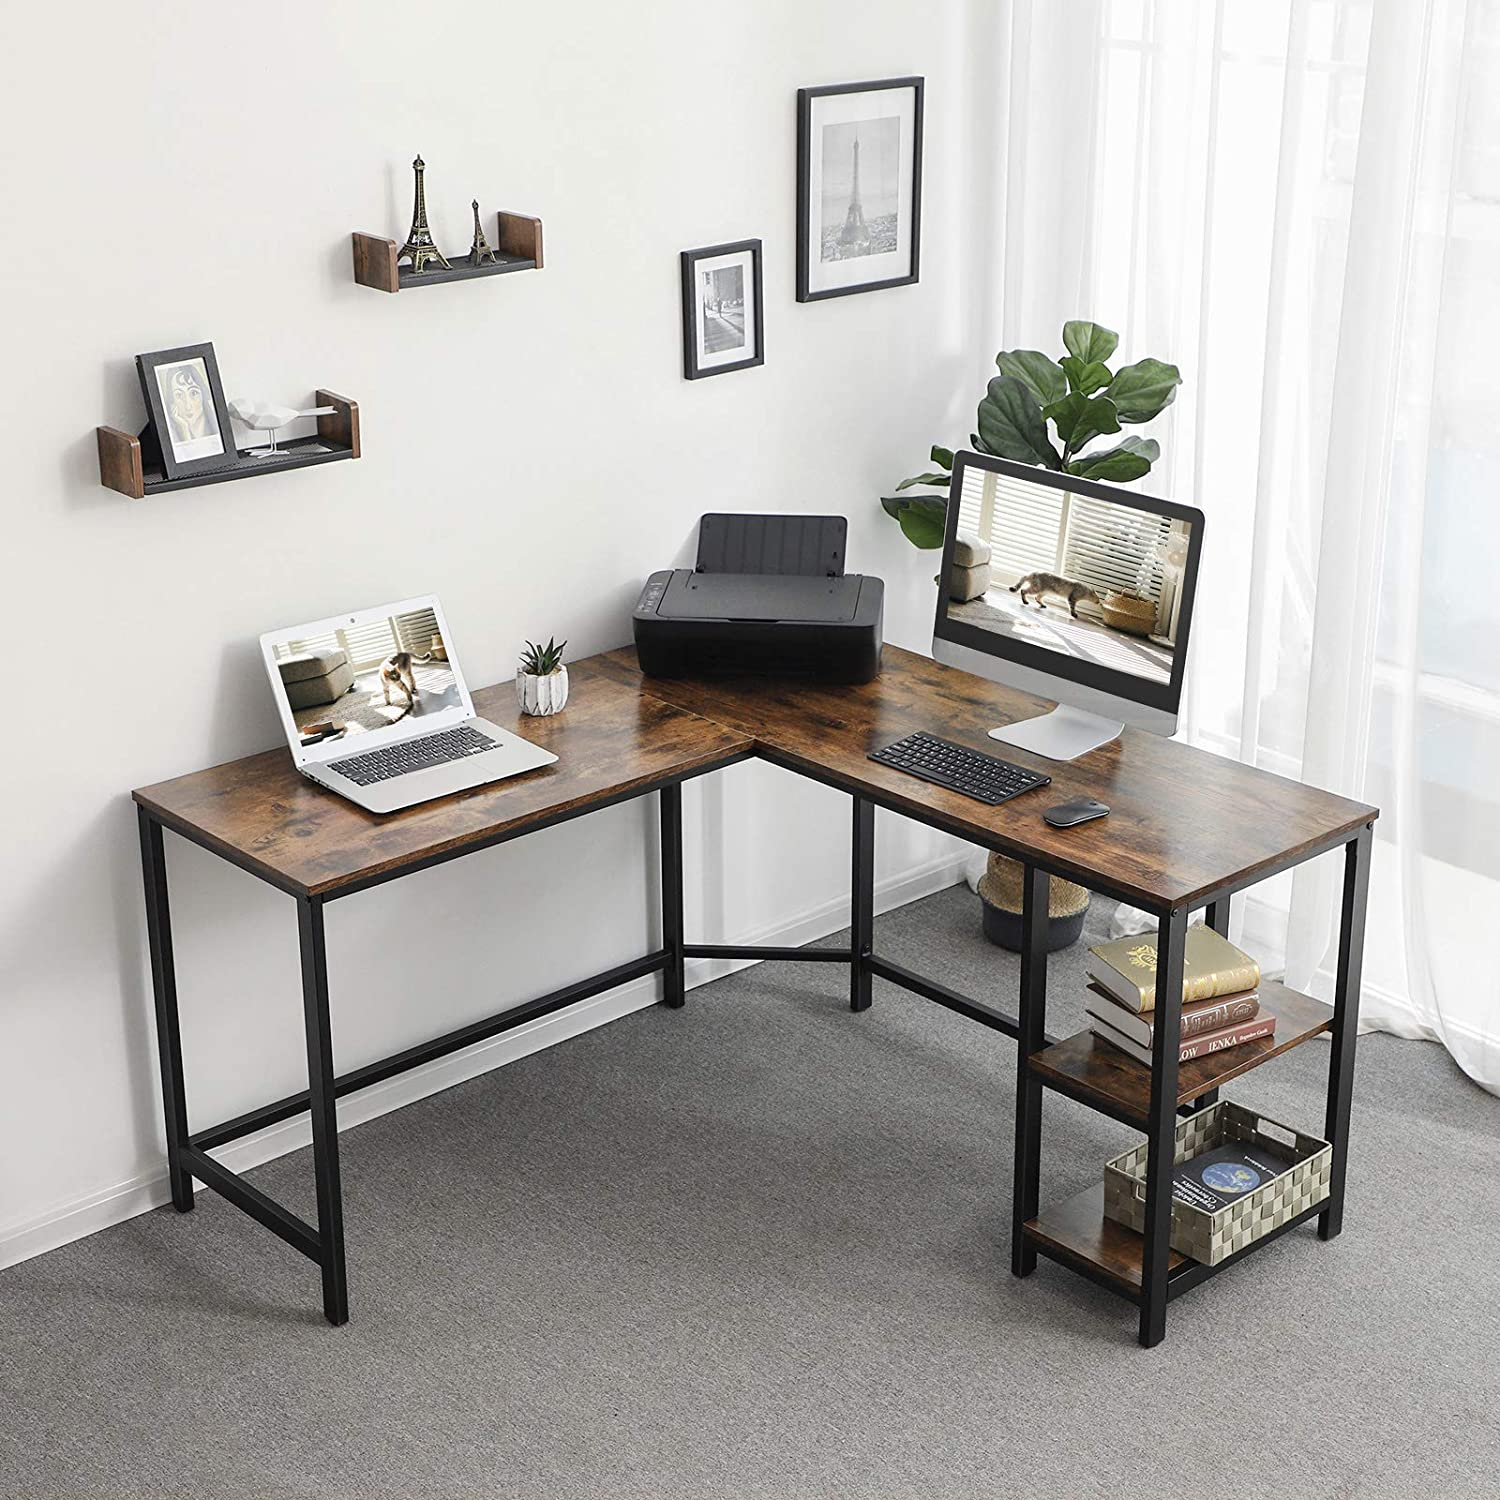 Corner Desk w/ Shelves